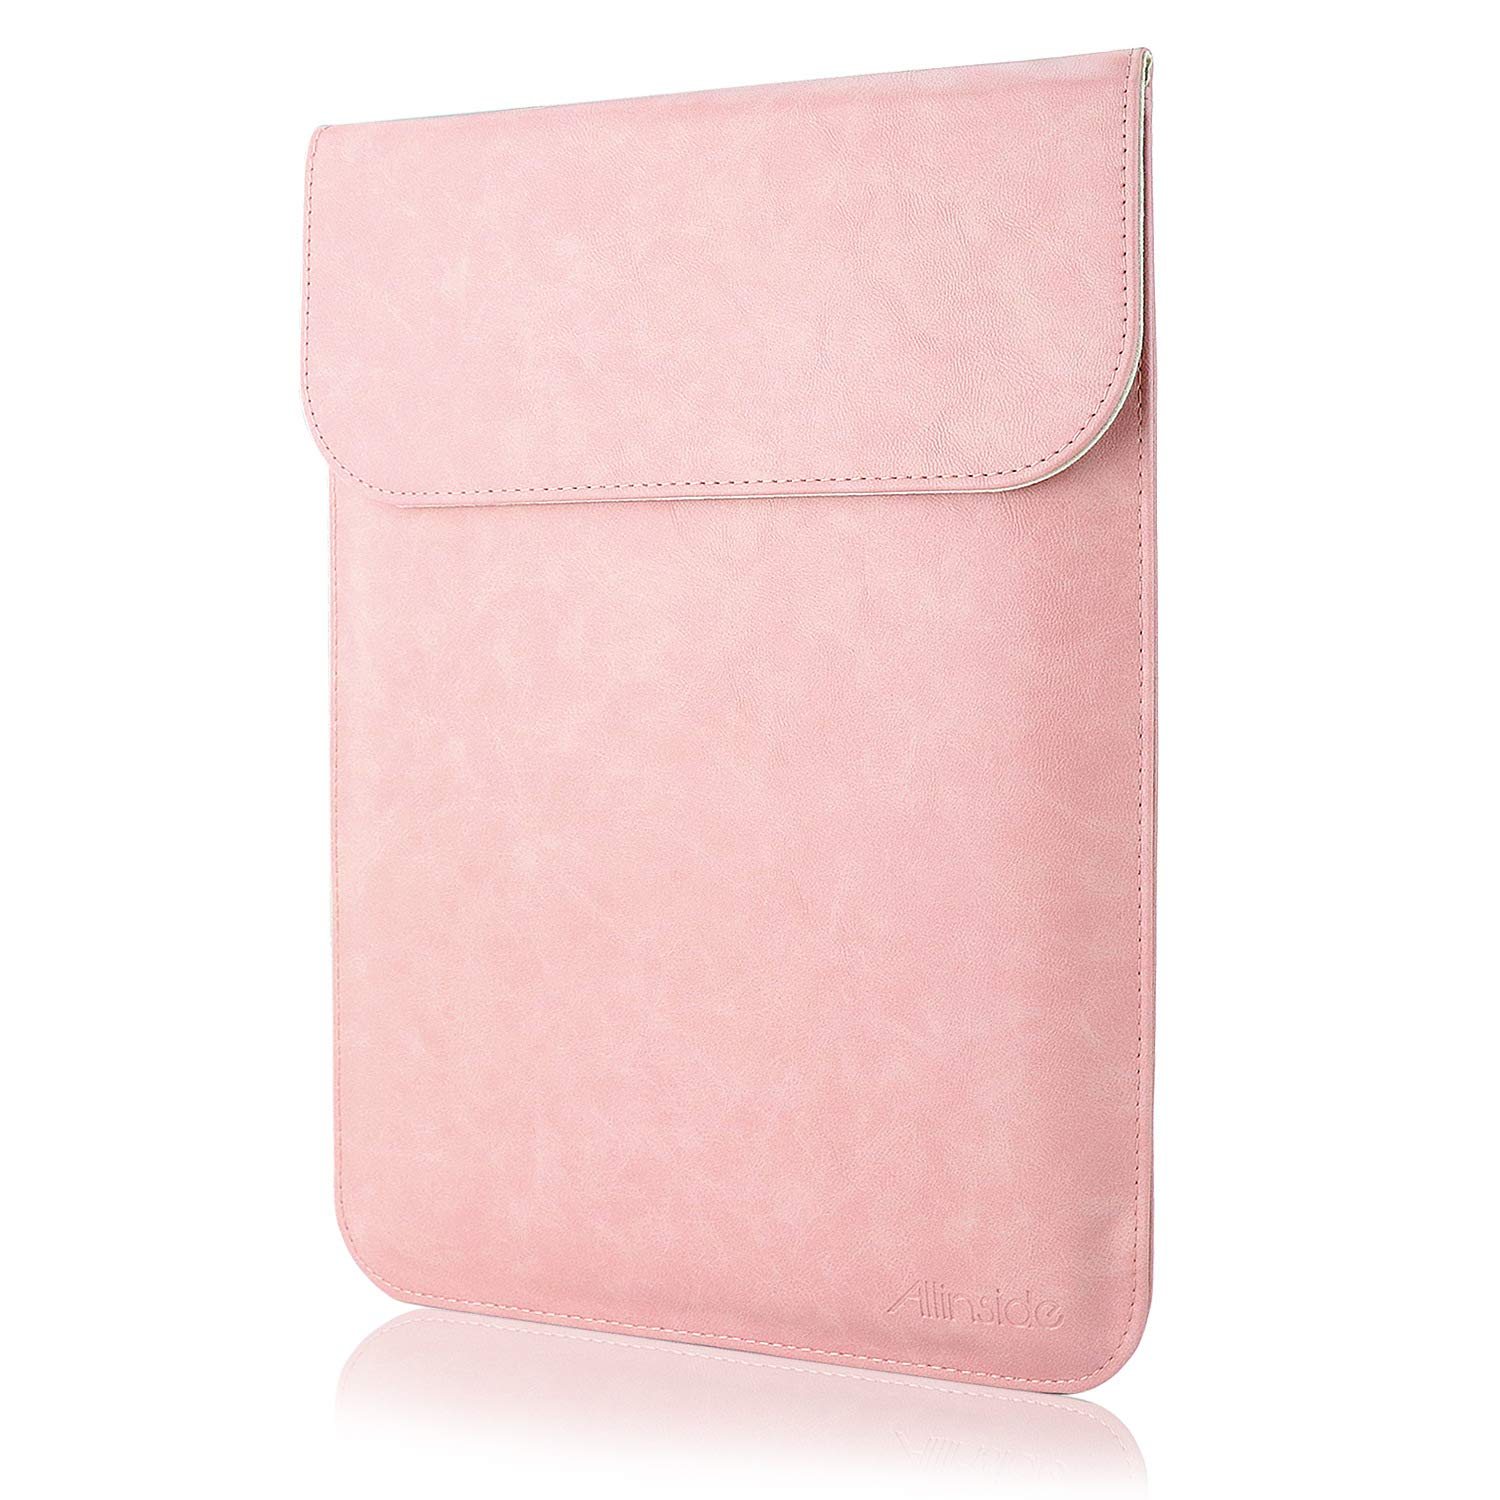 All-inside Pink Synthetic Leather Sleeve for MacBook Air 13'' Pro 13'' with/Without Retina and New MacBook Pro 13'' with/Without Touch Bar by All-inside